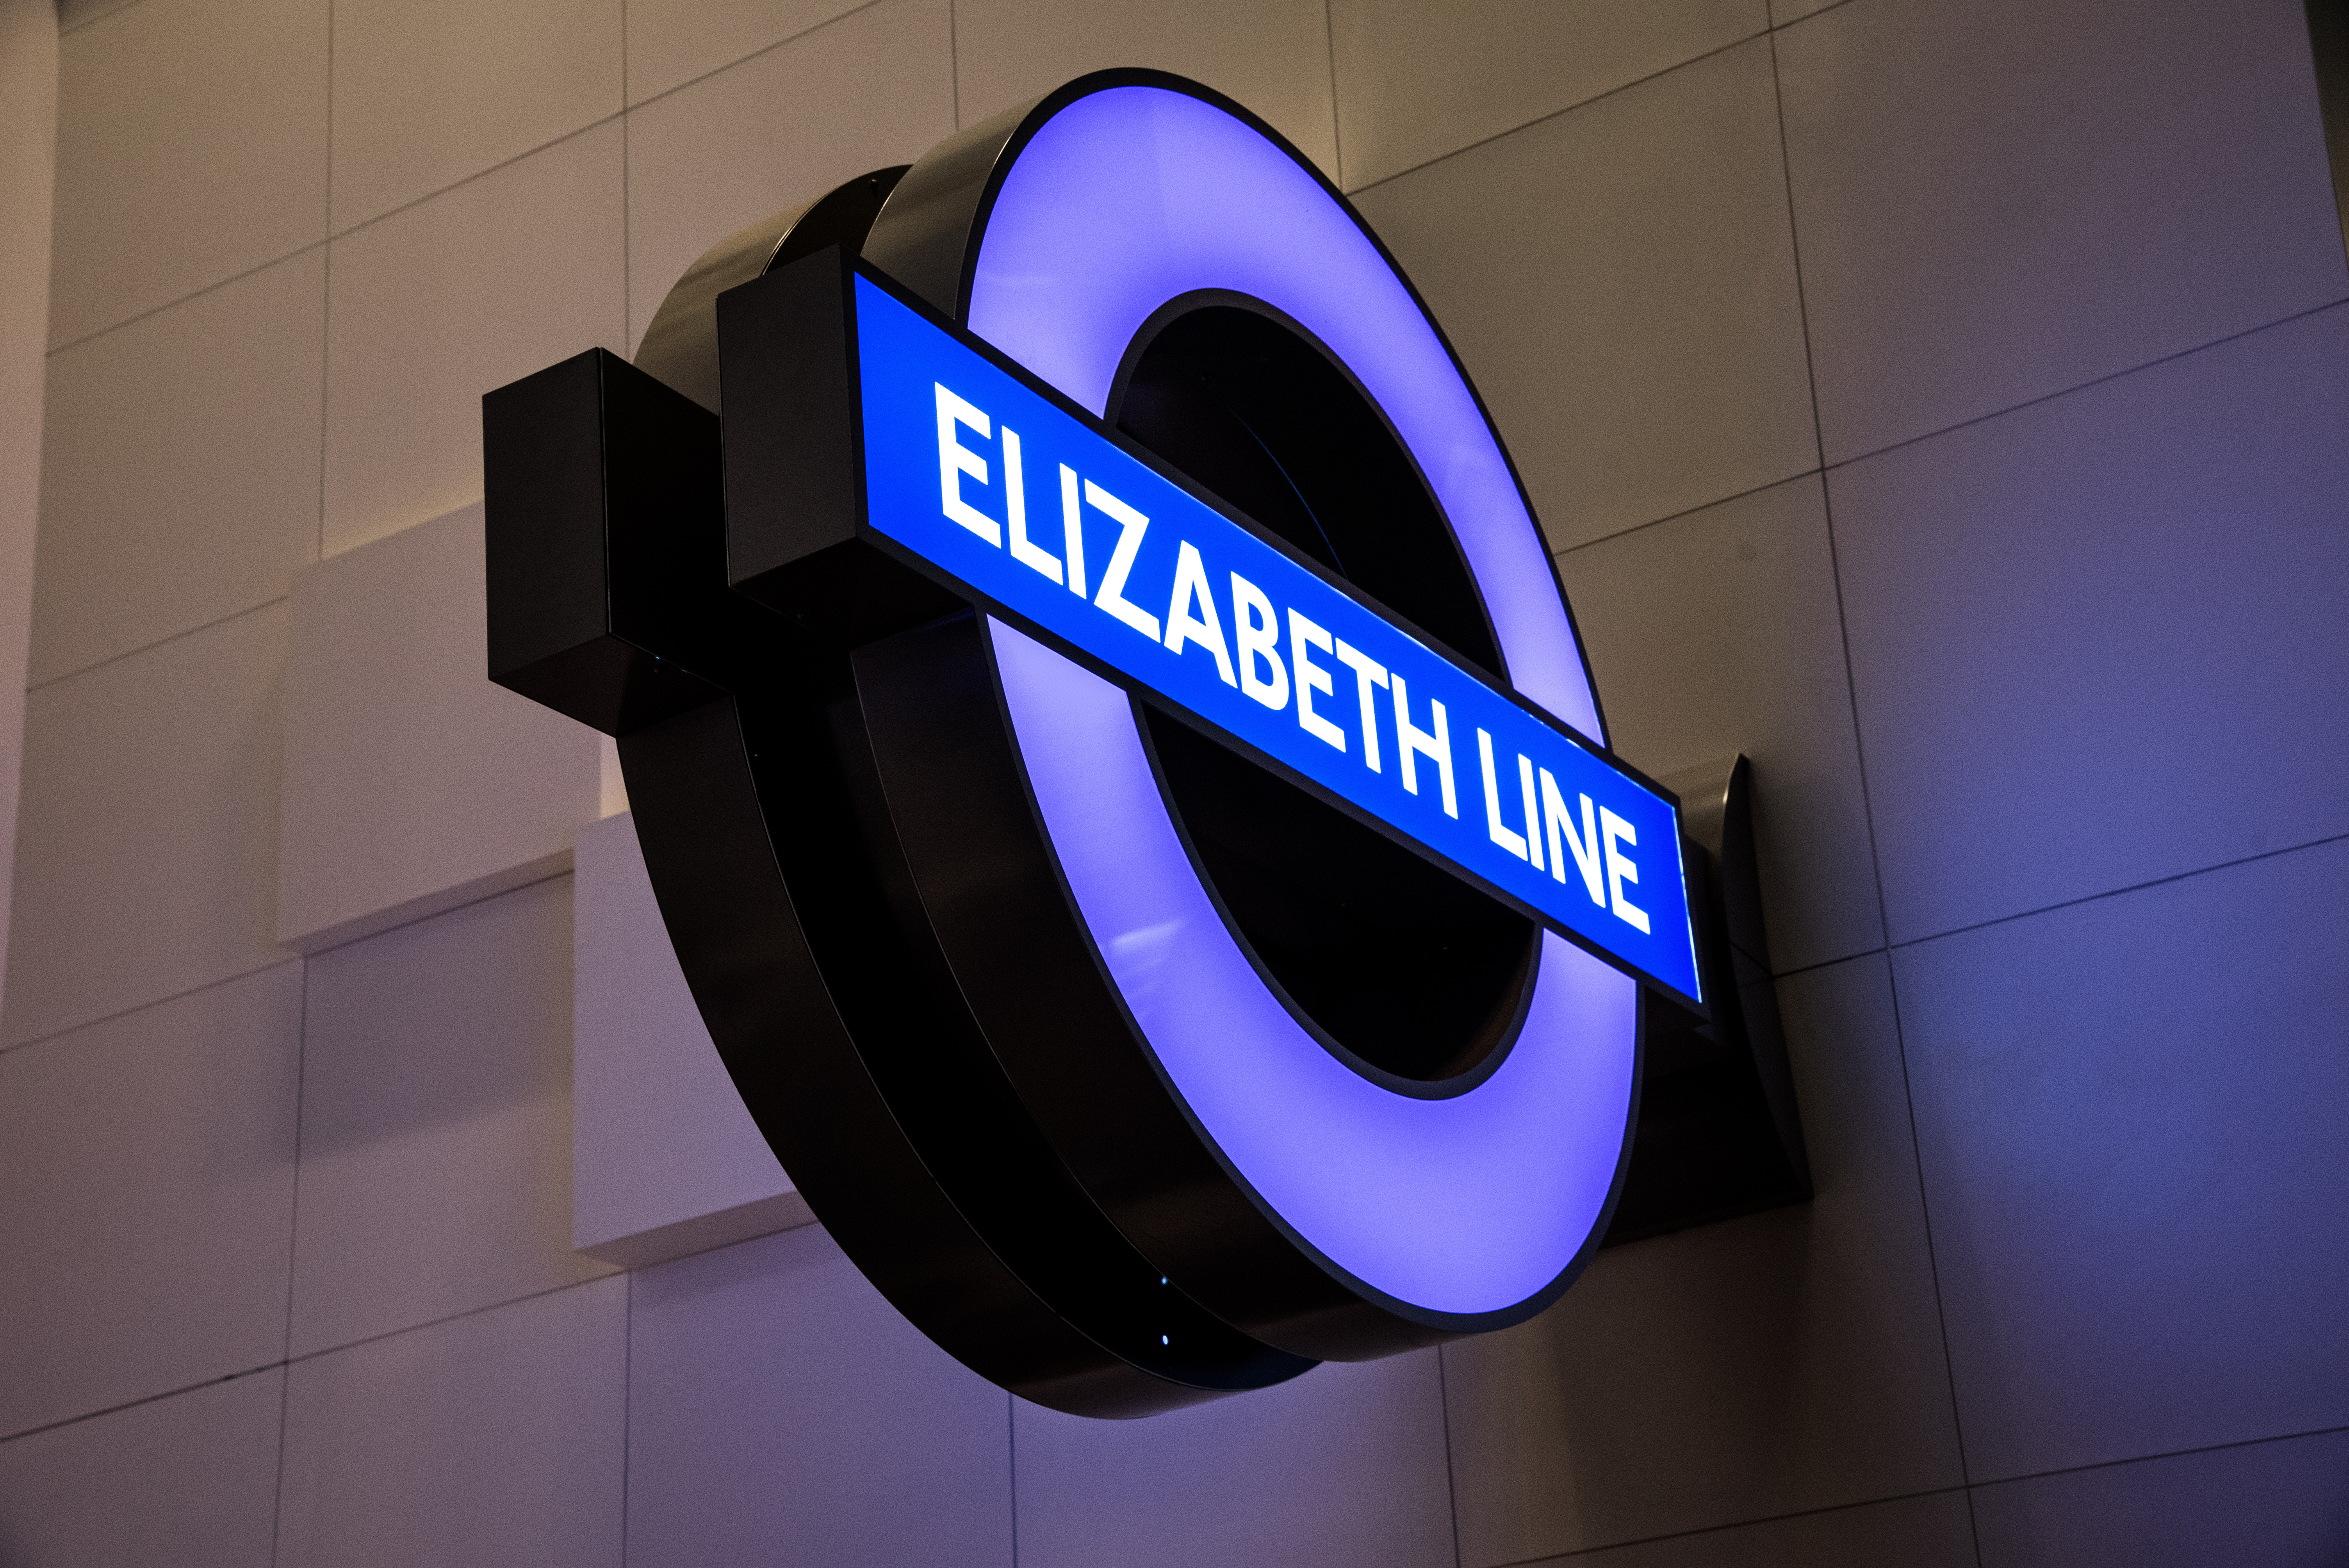 Elizabeth line roundel - London Transport Museum